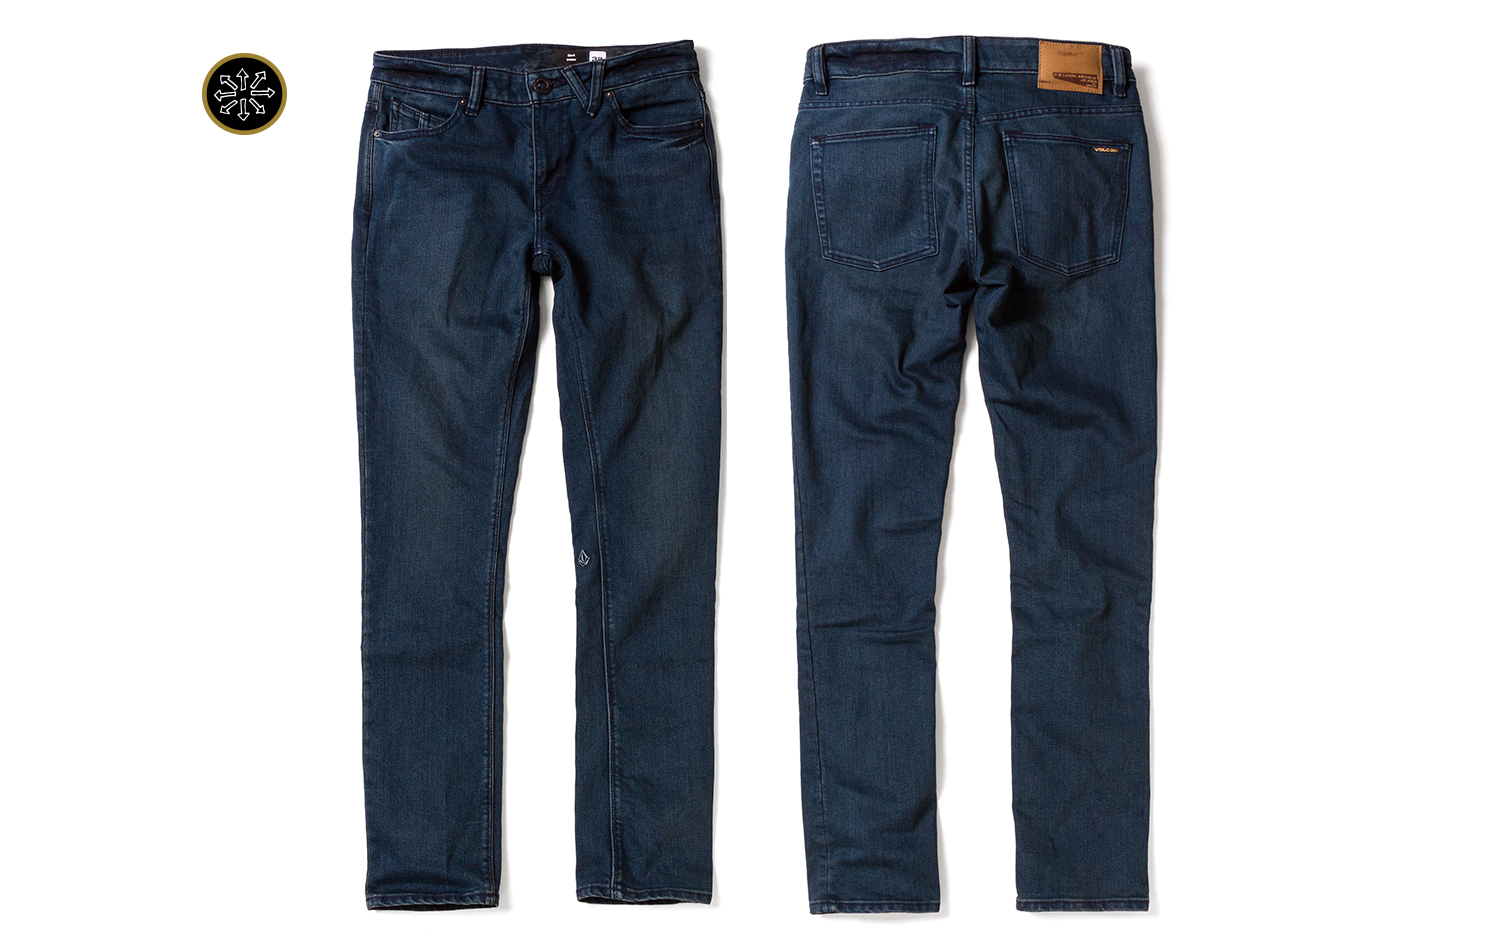 volcom_web_2x4-denim_hrb